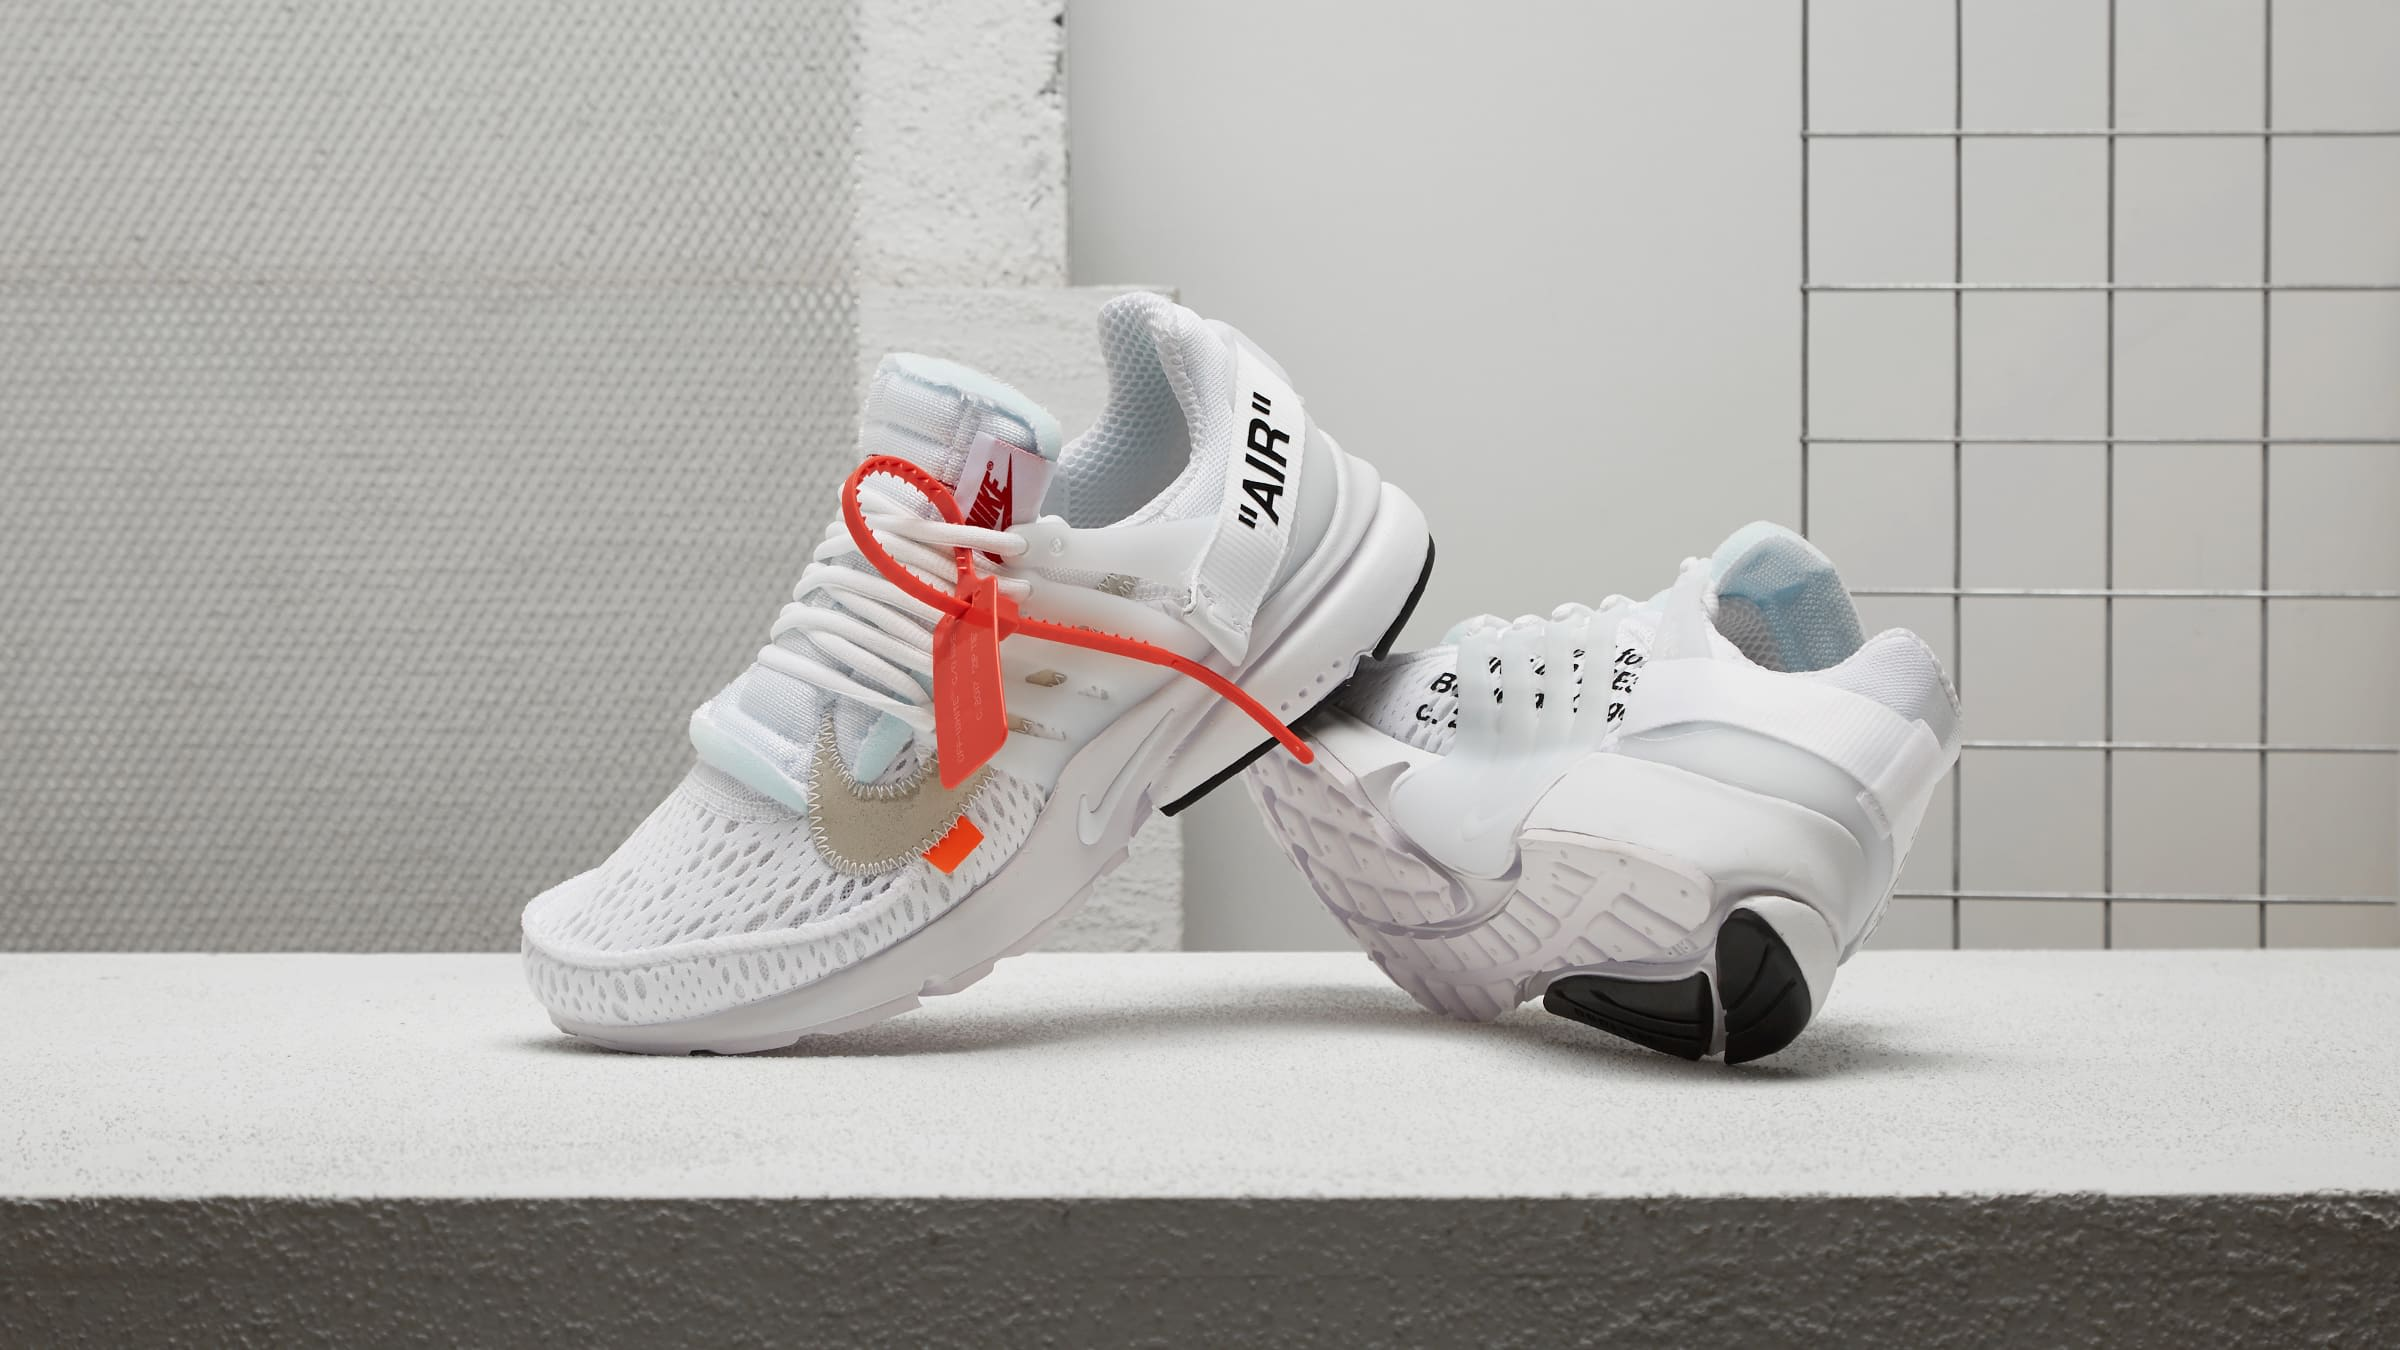 END. Features Nike x Virgil Abloh The Ten: Air Presto  Nike x Virgil Abloh The Ten: Air Presto